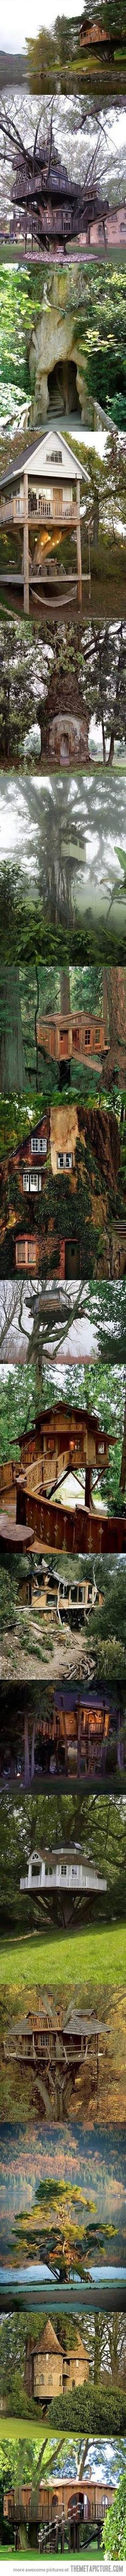 Now these are tree houses!!!  #treasuredtravel